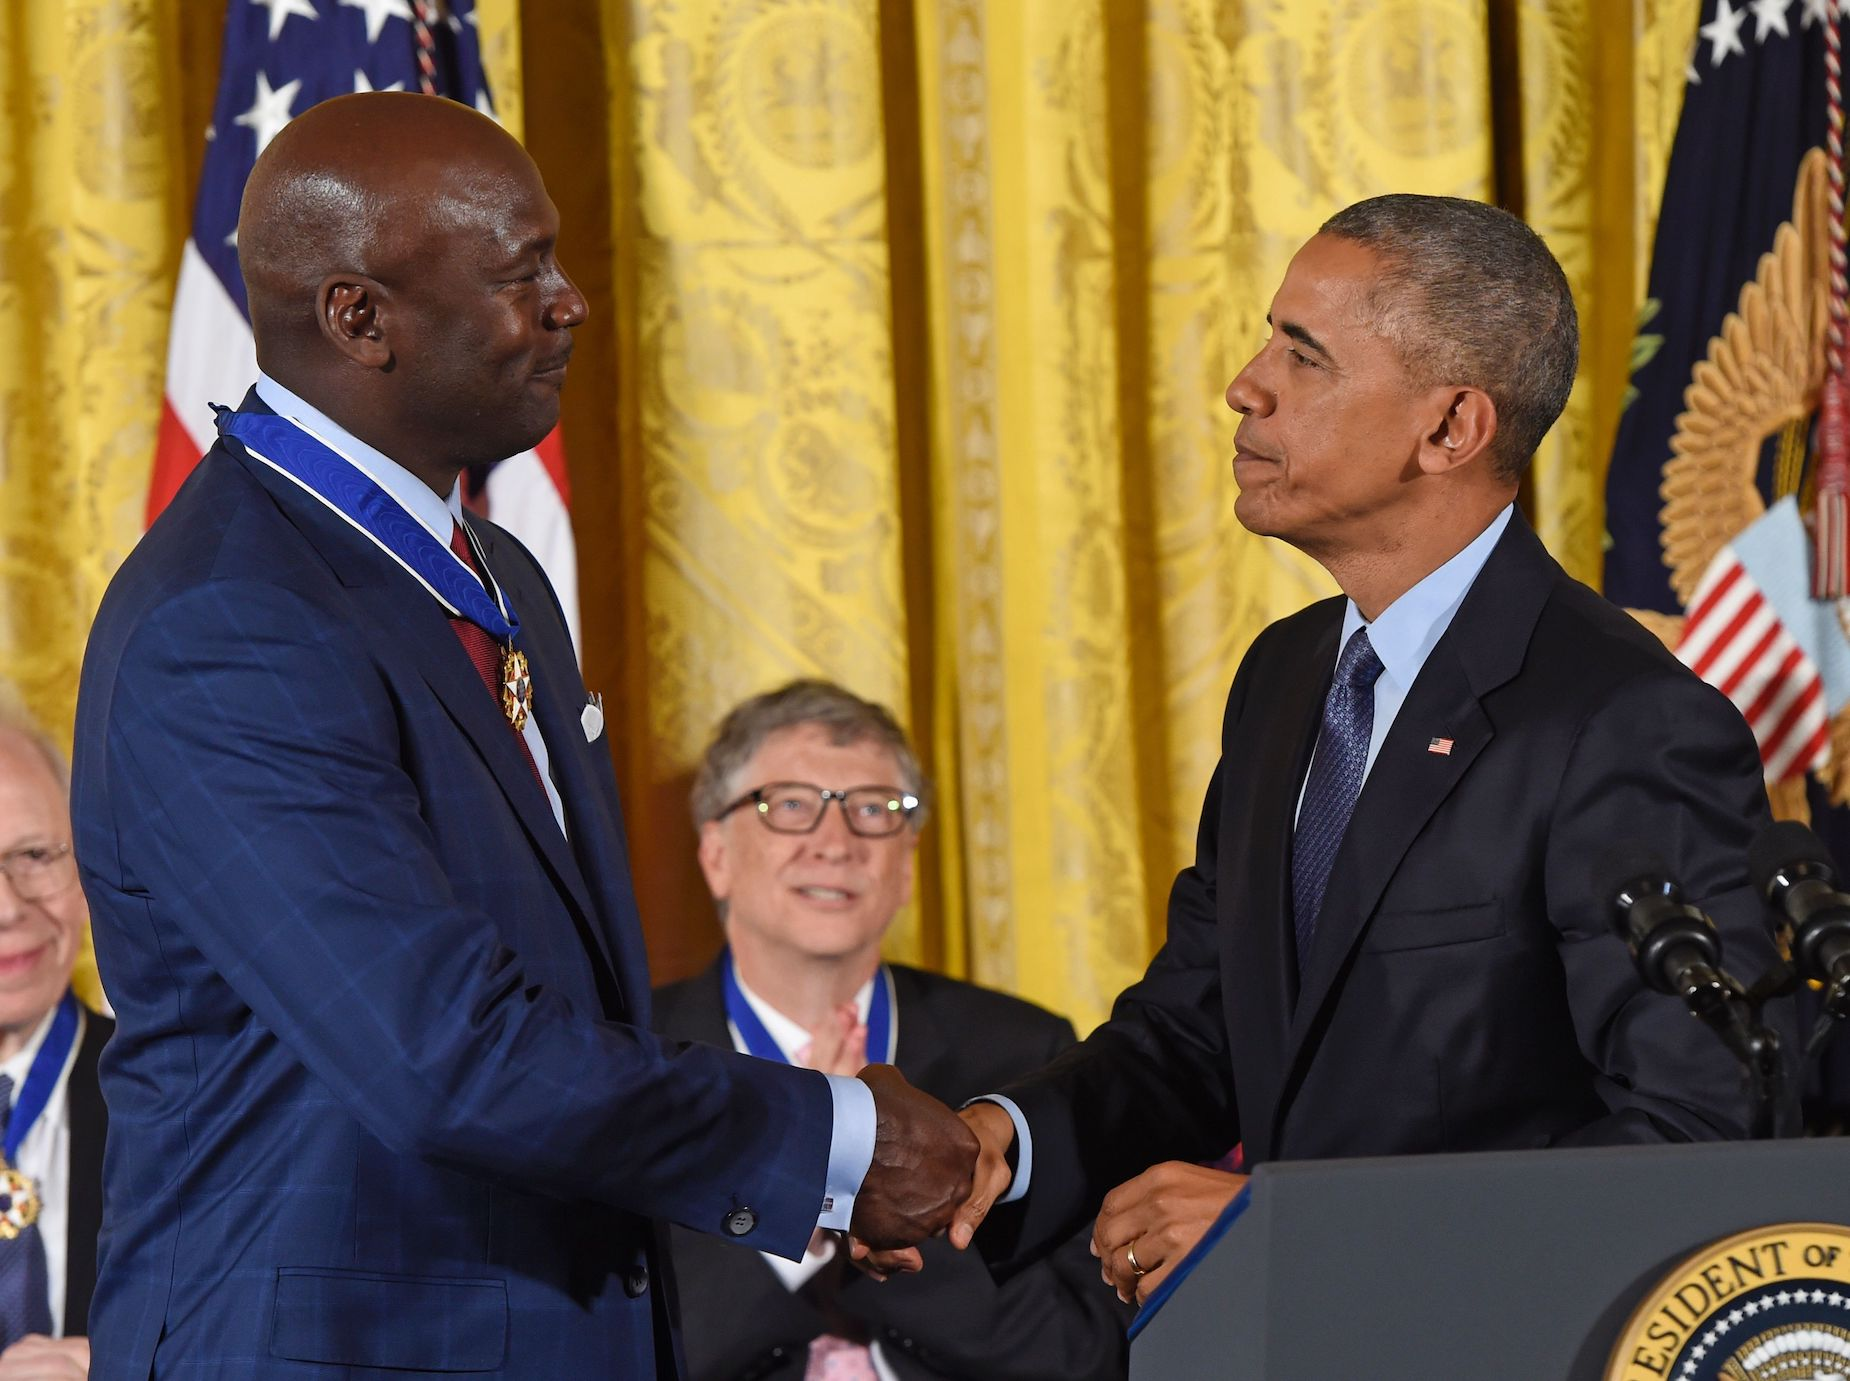 Michael Jordan (L) and Barack Obama (R), shake hands in the White House.